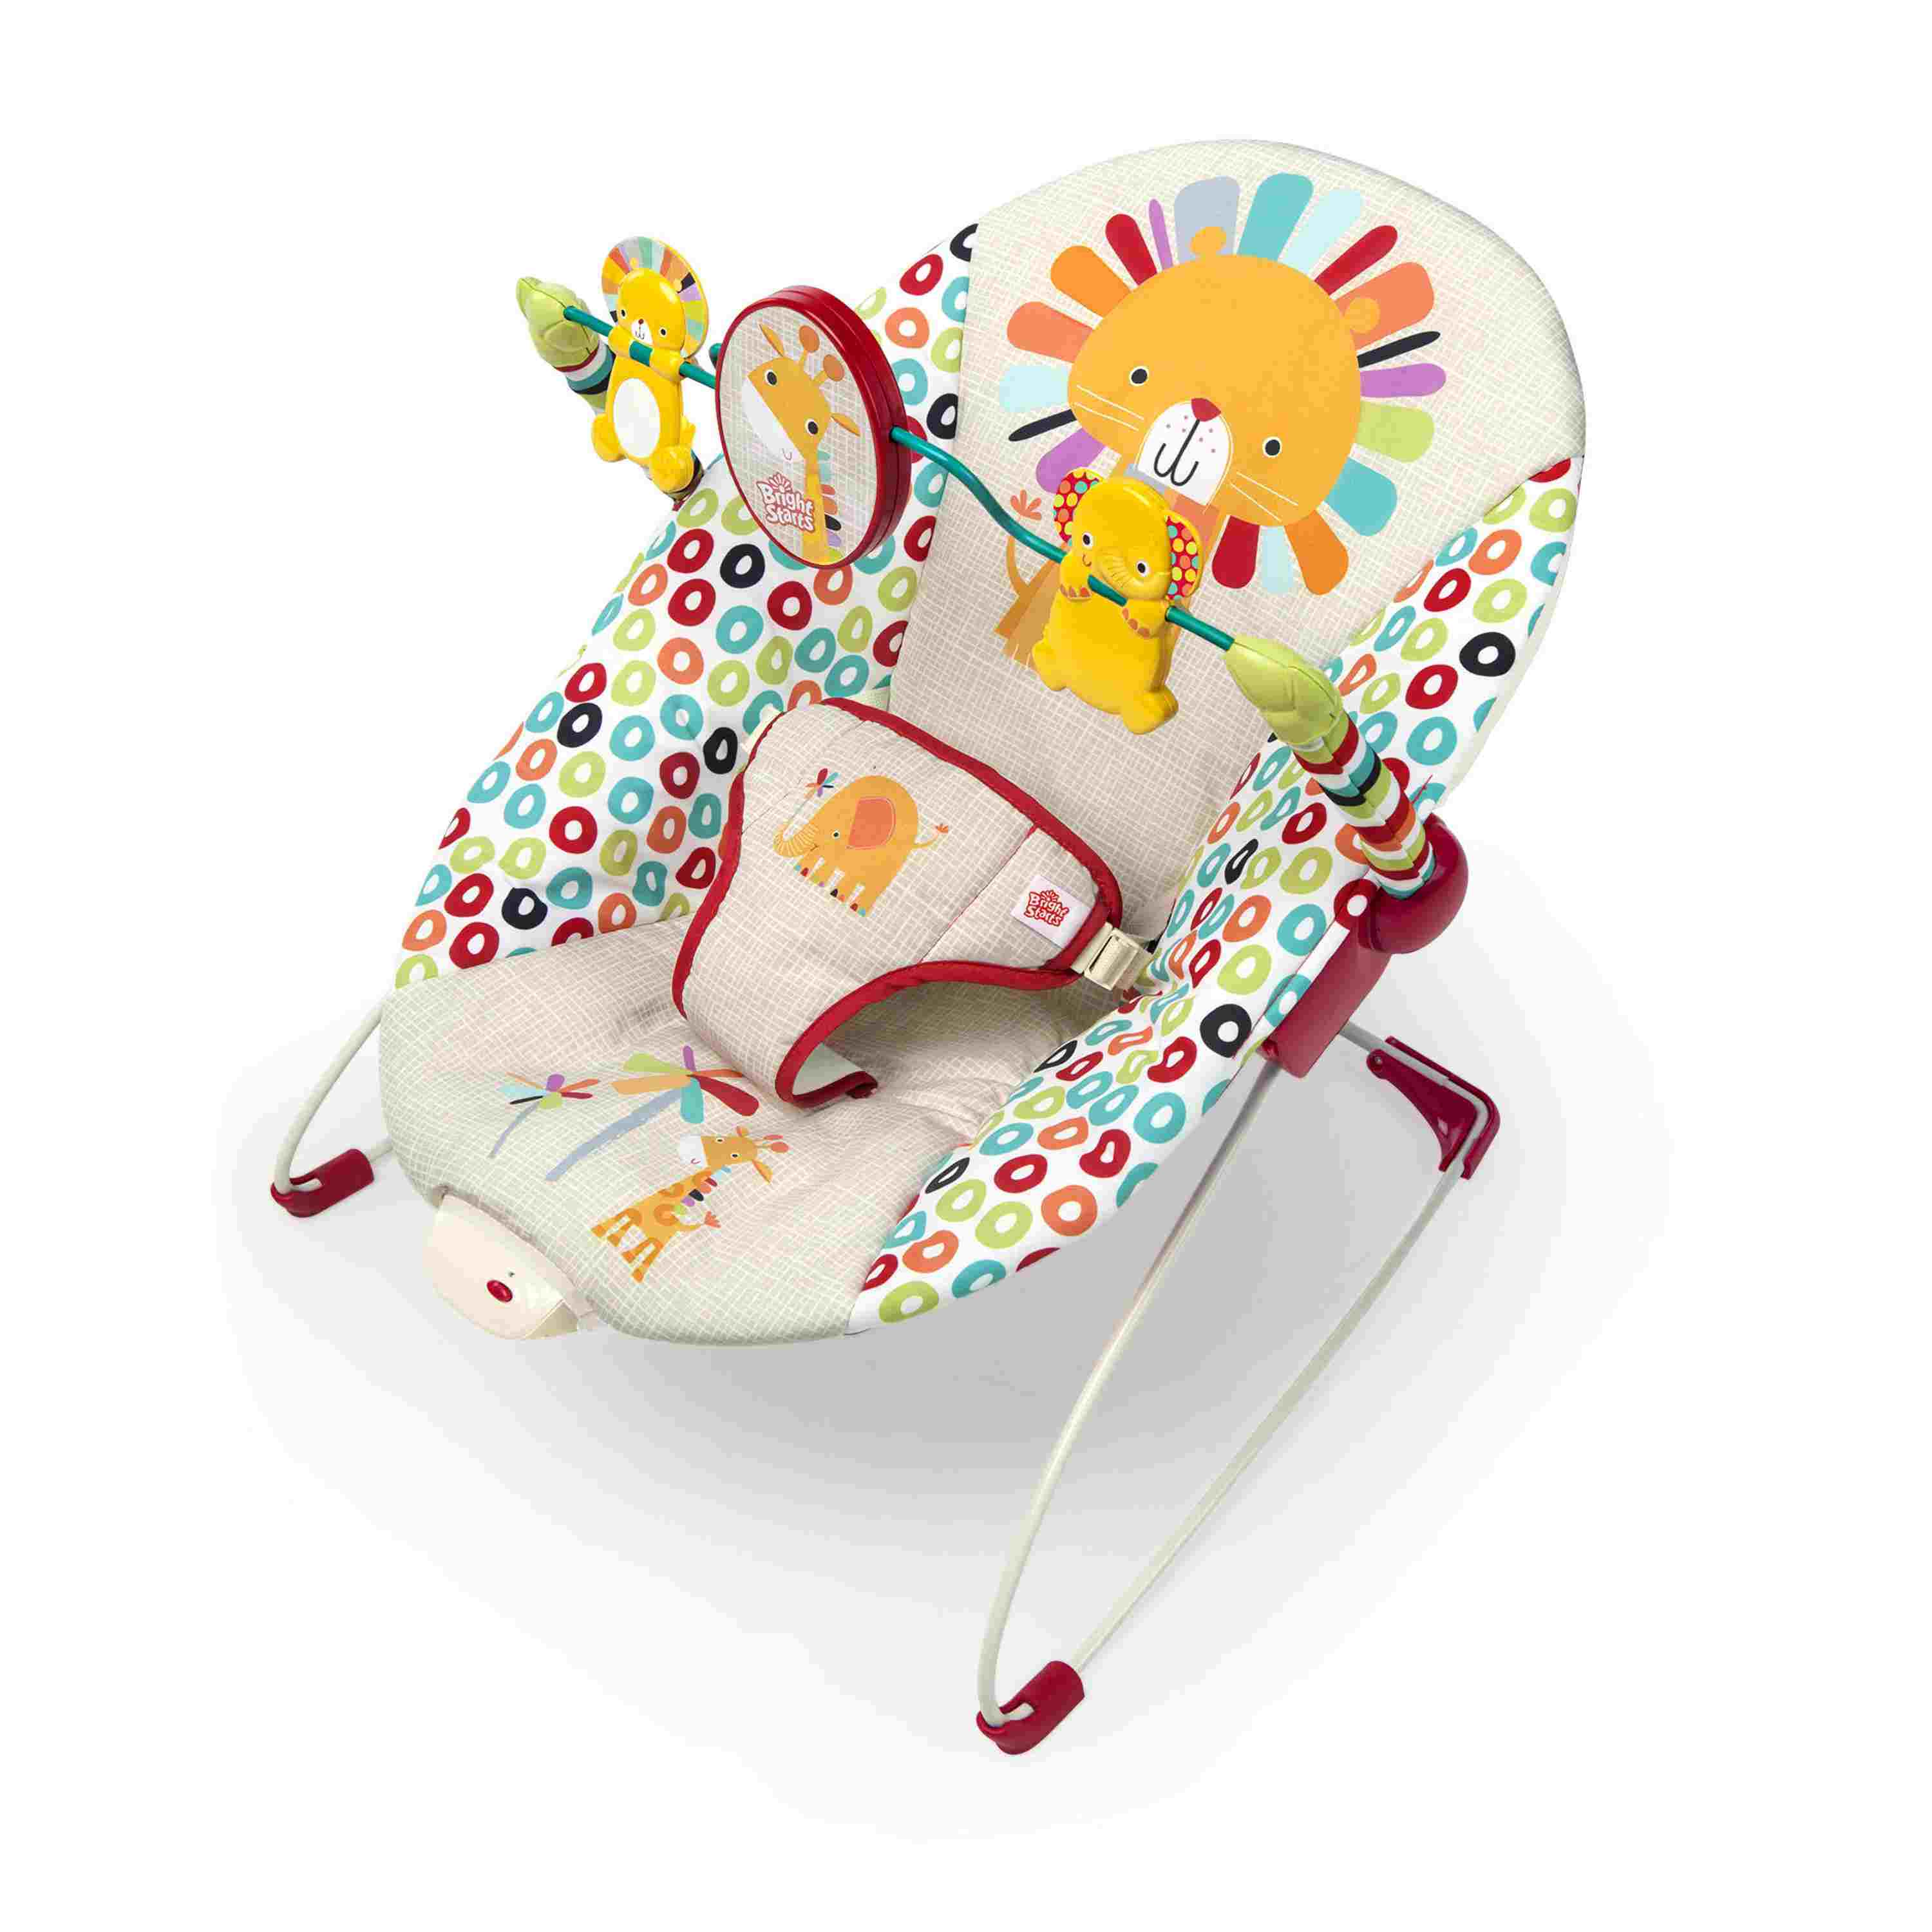 infant bouncy chair cover hire mornington peninsula the 7 best baby bouncers to buy in 2019 budget bright starts playful pinwheels bouncer